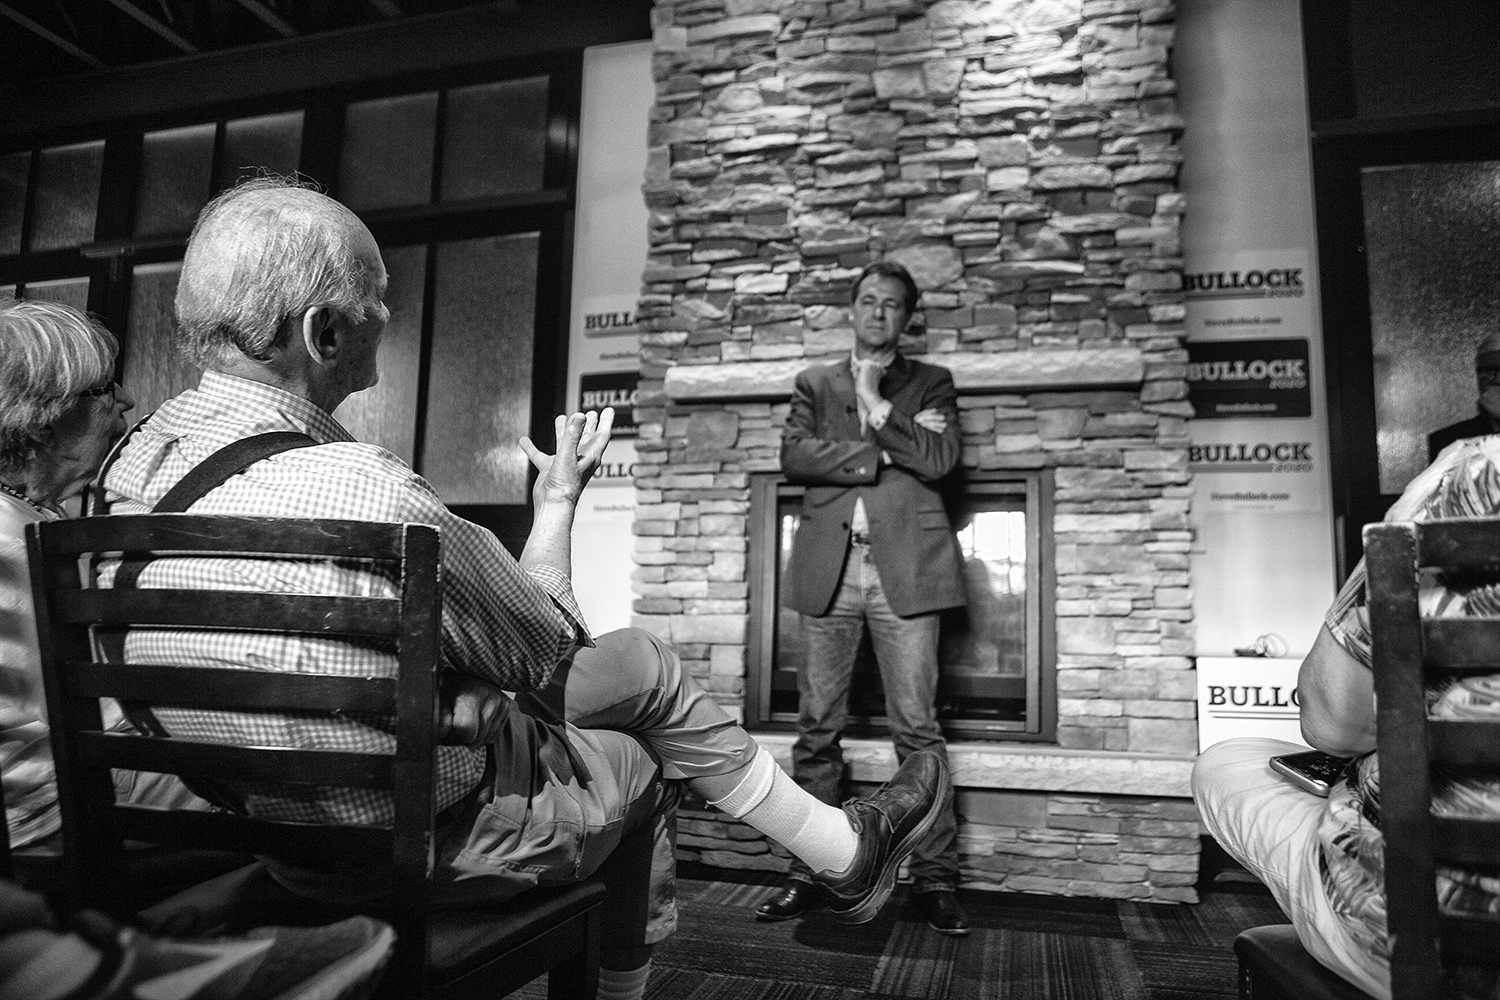 Governor+of+Montana+Steve+Bullock+addresses+supporters+during+his+meet+and+greet+in+Blackstone+on+July+10%2C+2019.+